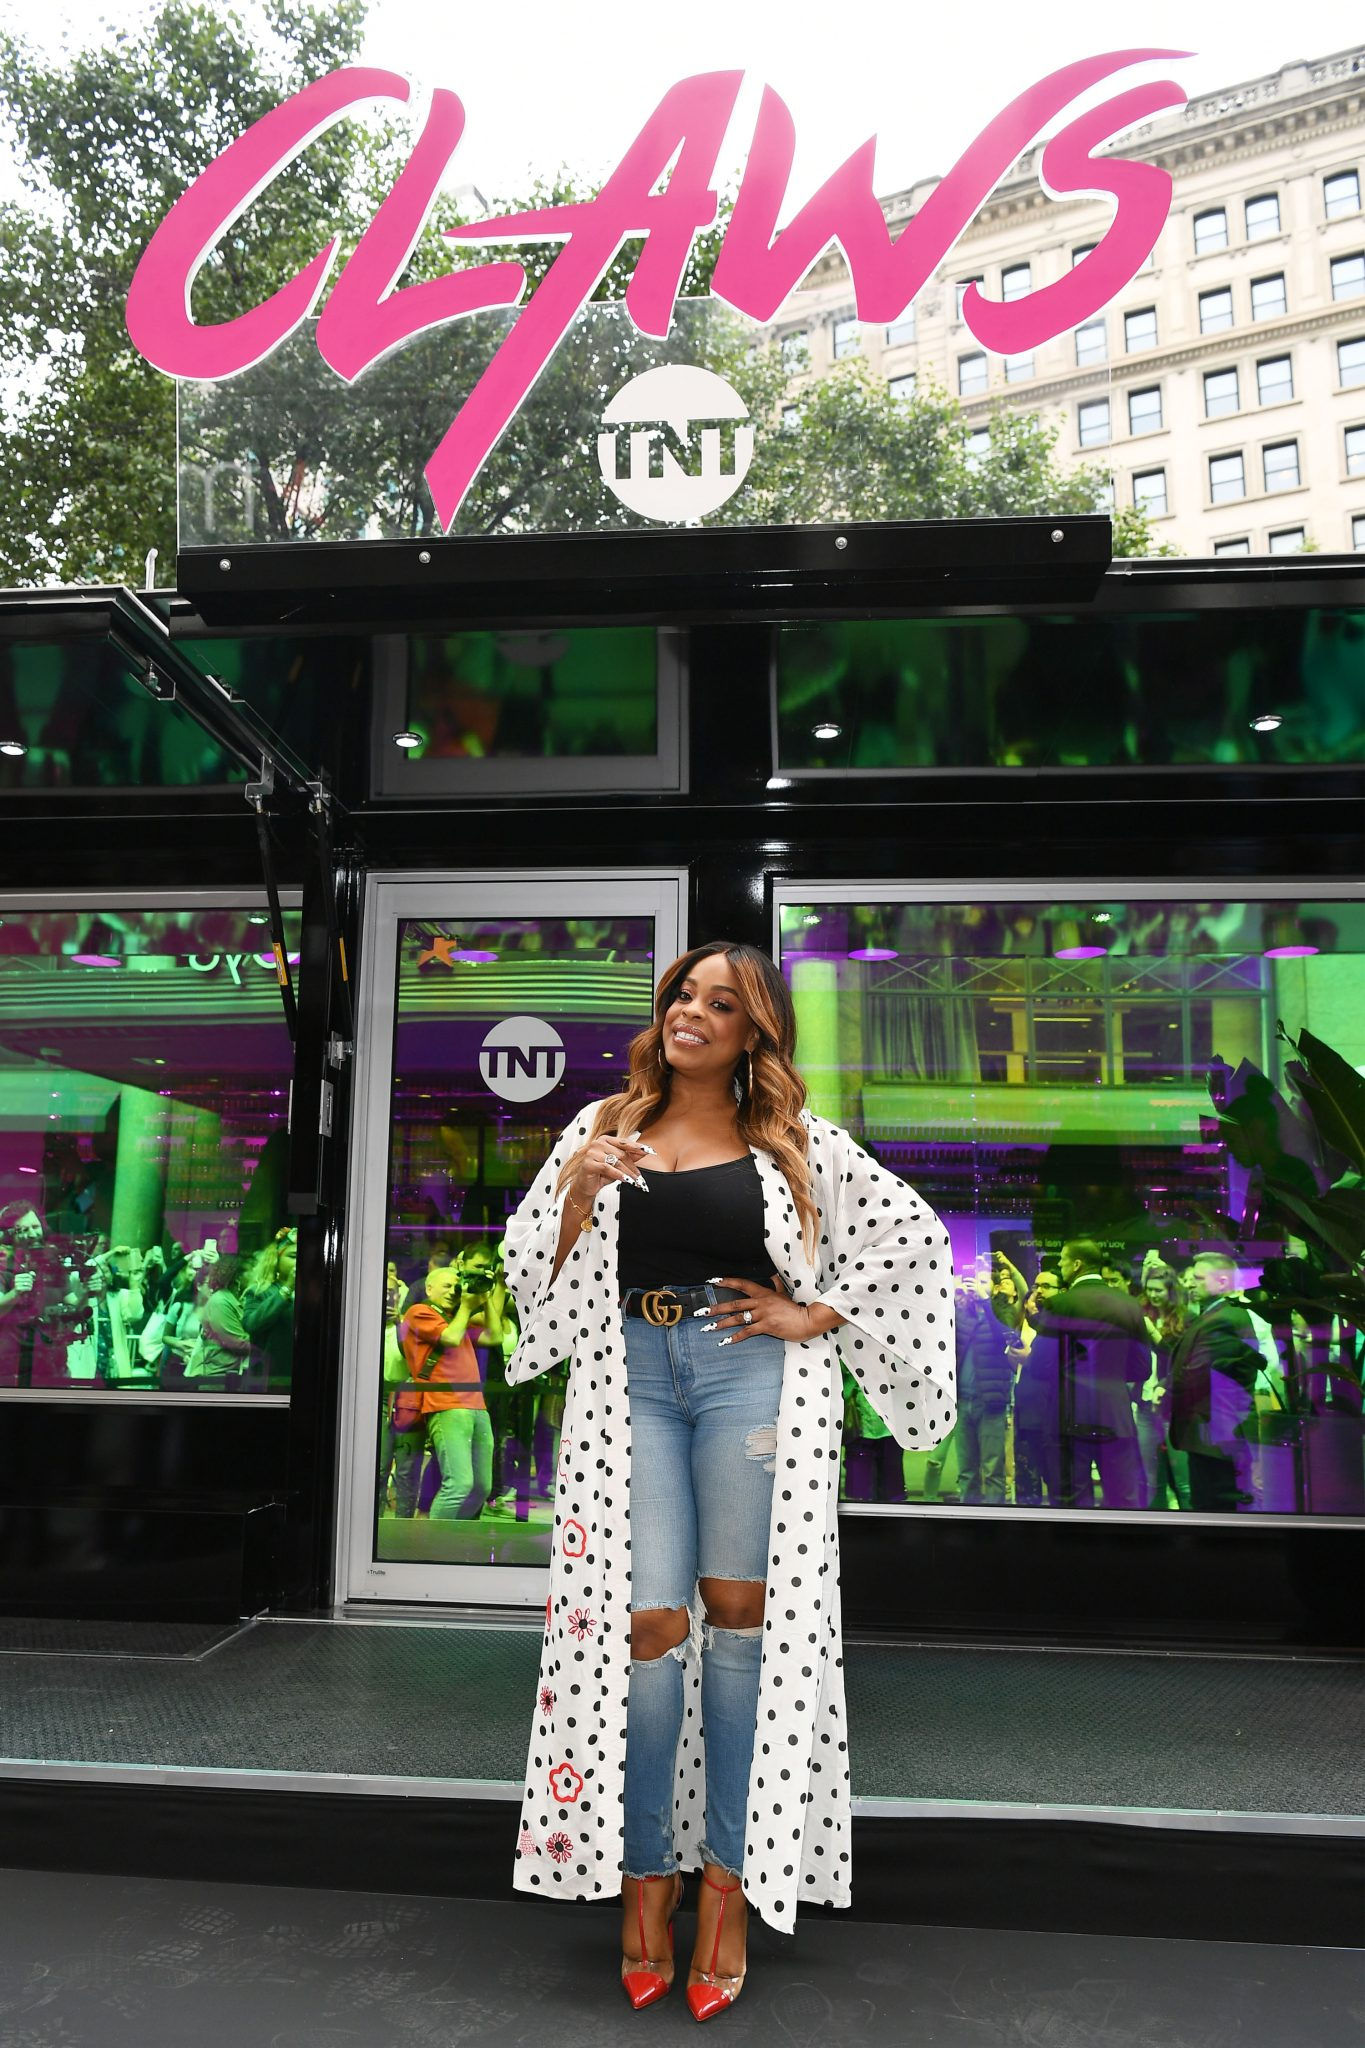 TNT's CLAWS Presents the #ClawsUp Tour New York With Niecy Nash